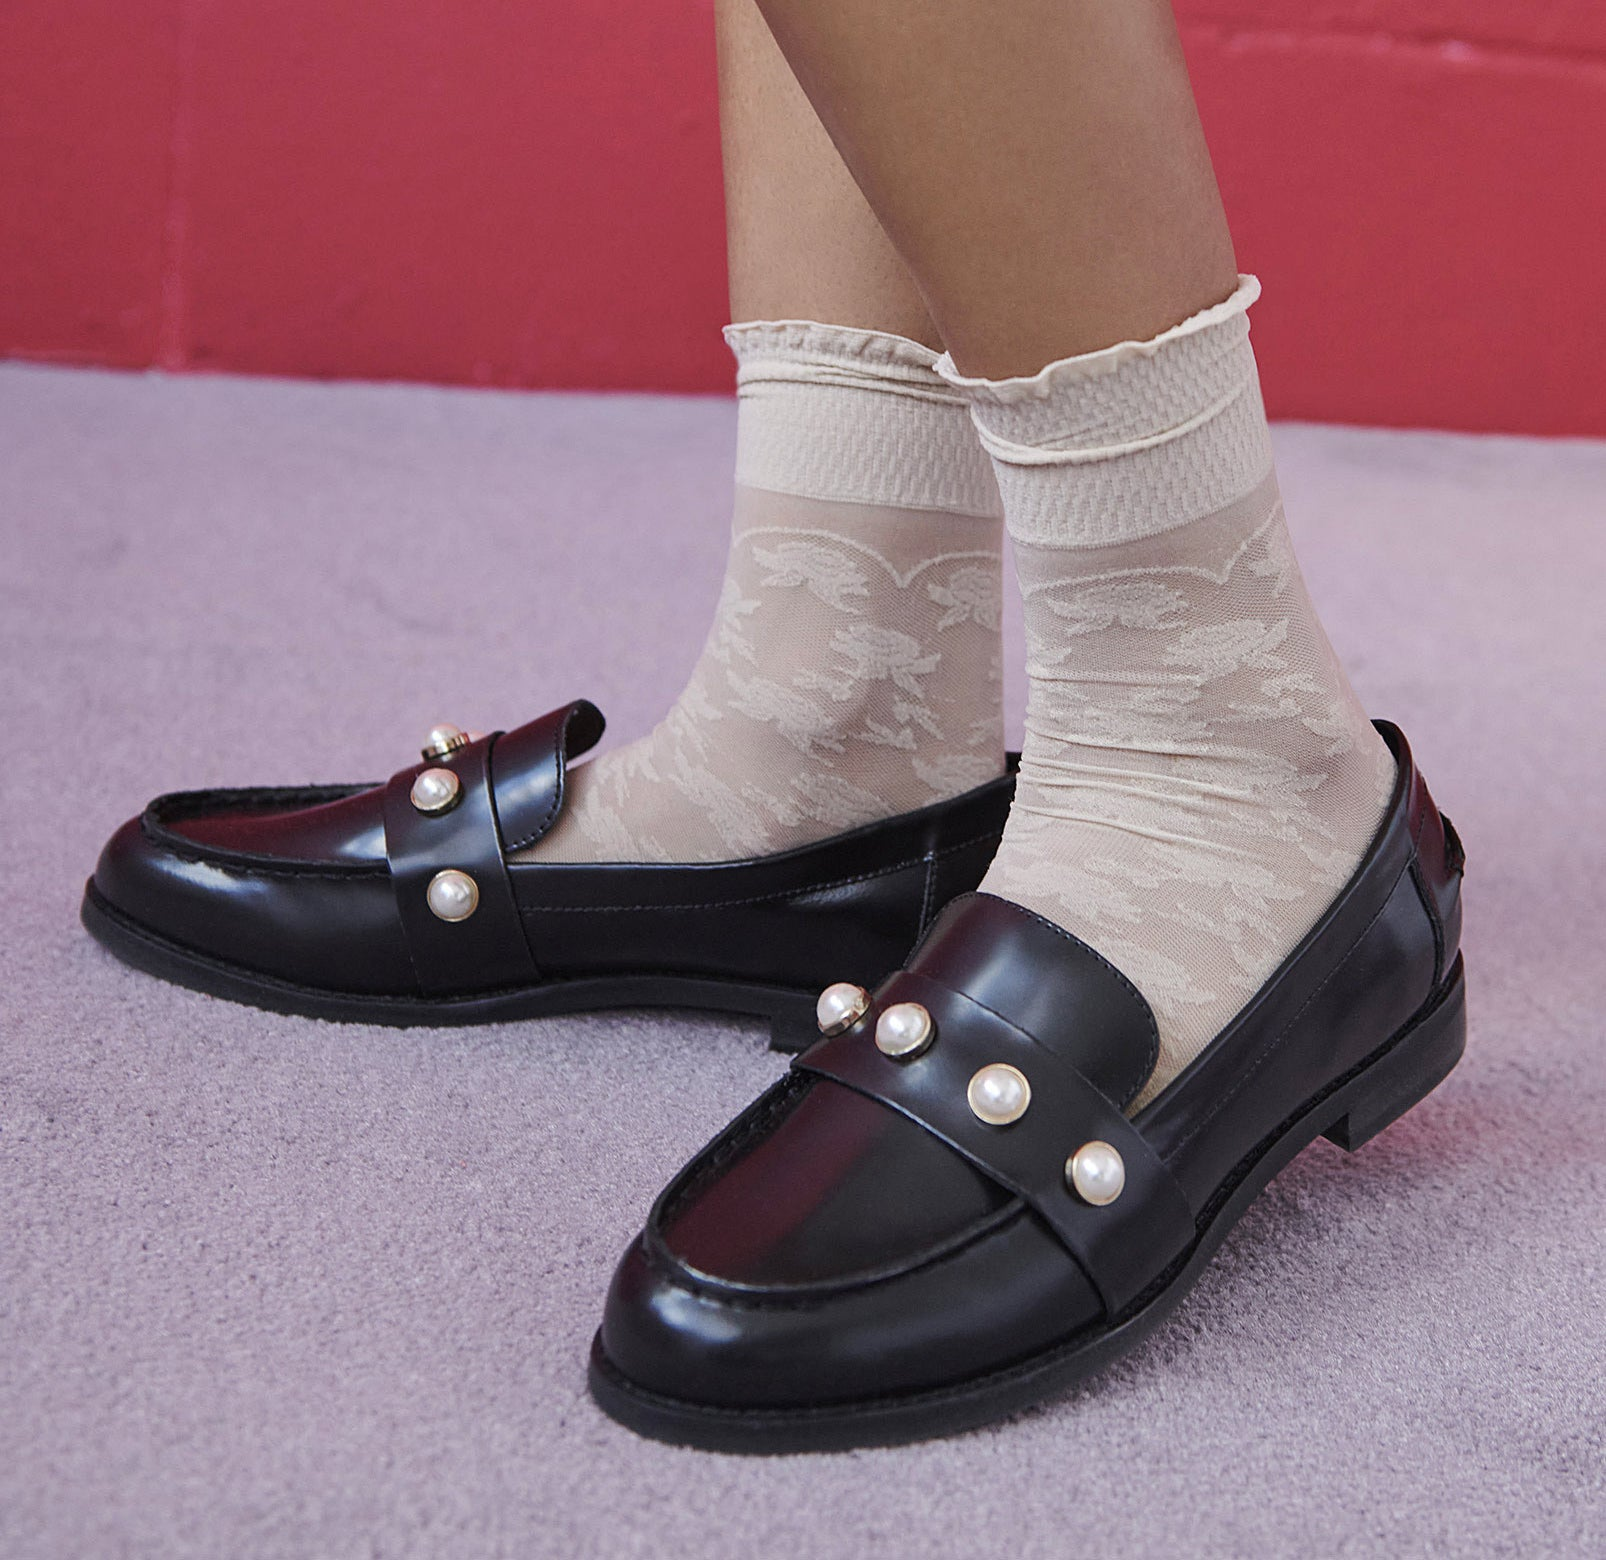 A person wearing leather loafers with pearls across the top